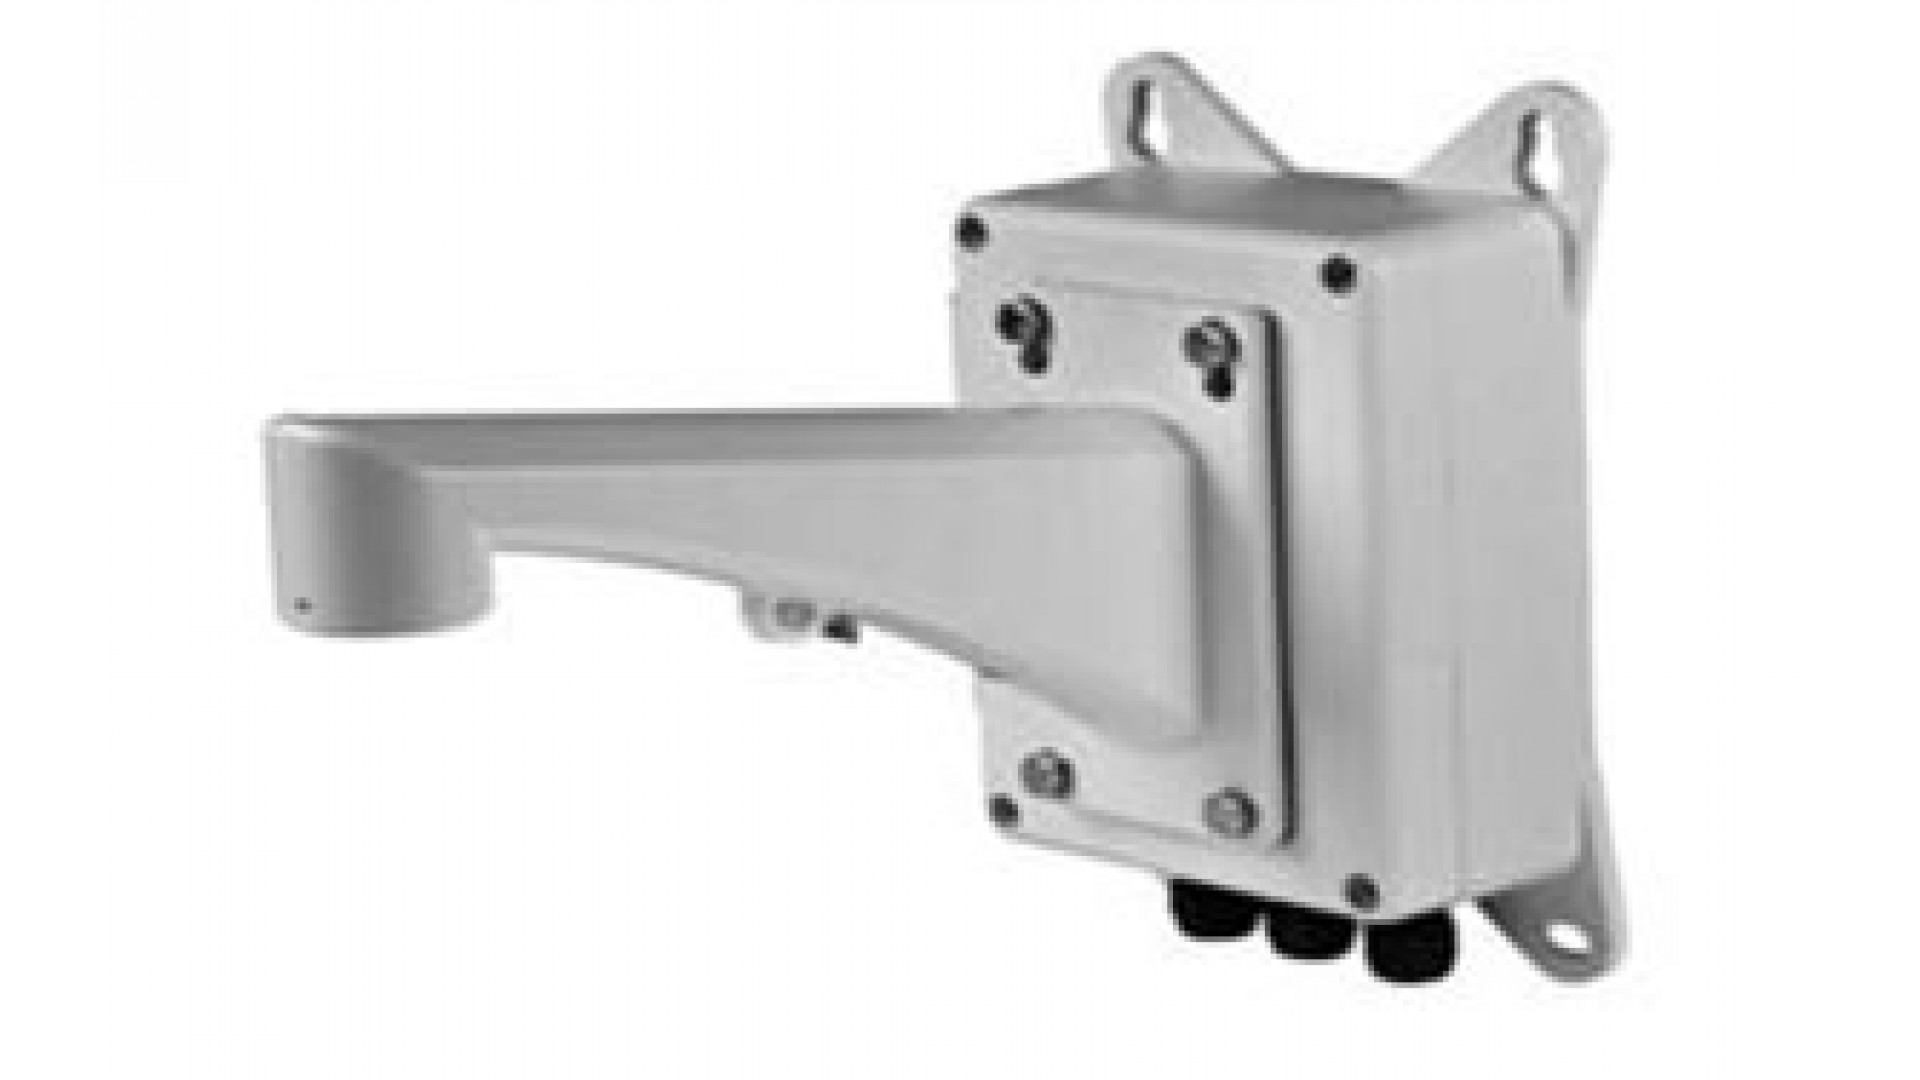 ptz wall mount bracket w electrical box zoom images